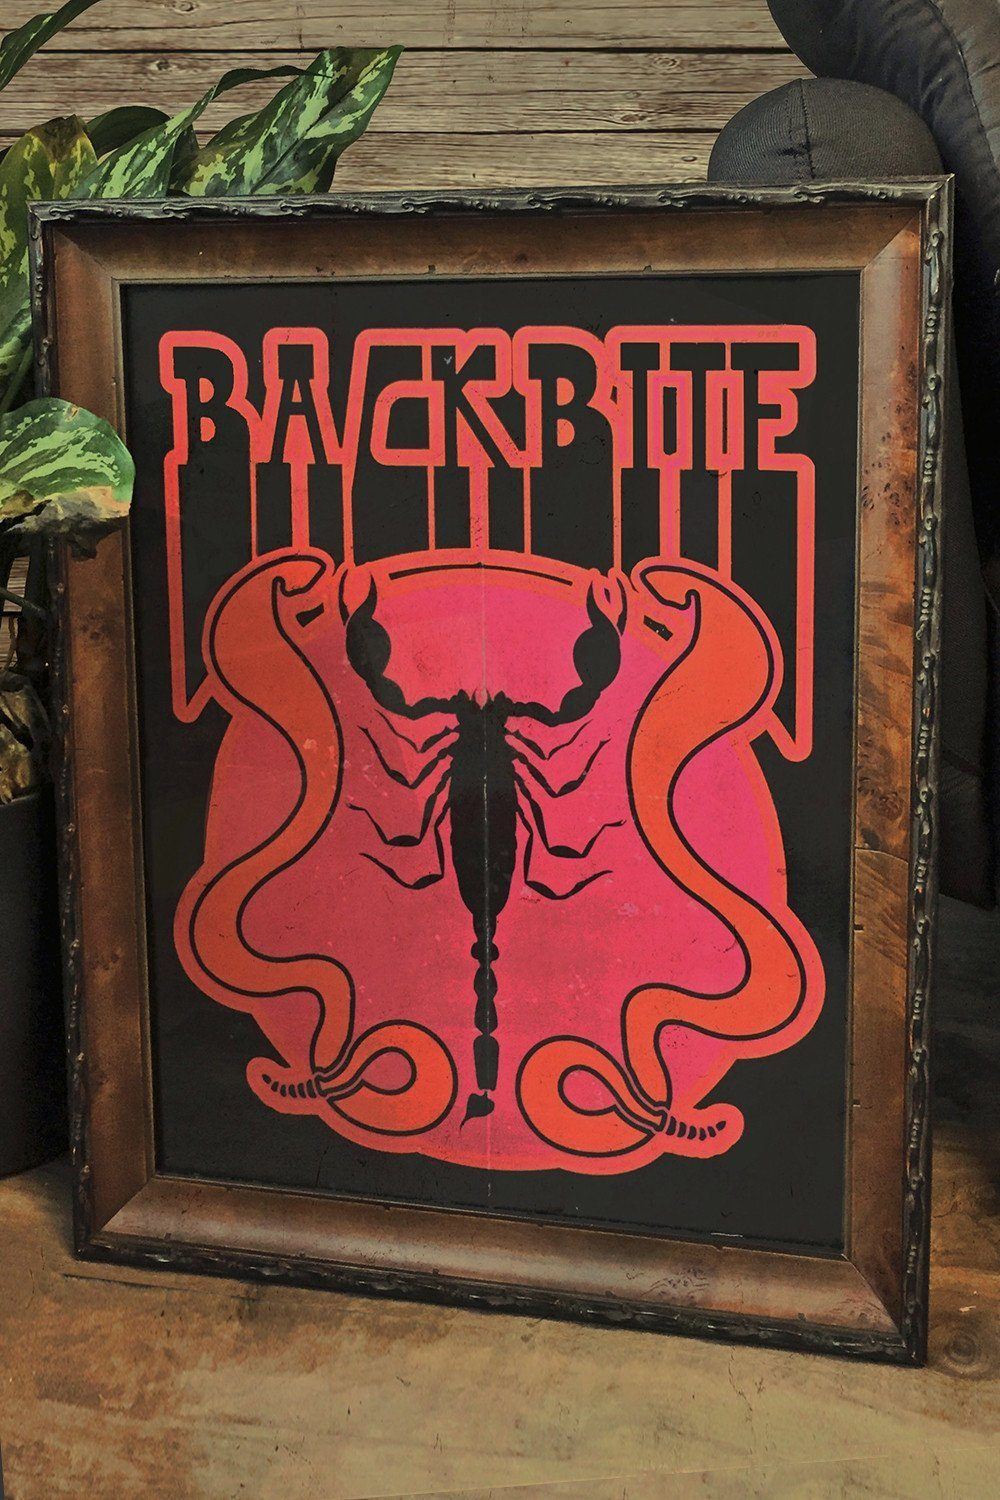 Backbite Scorpion and Snakes Original 16x20 Matte Poster, Home Adornment, HARLEY & J, BACKBITE